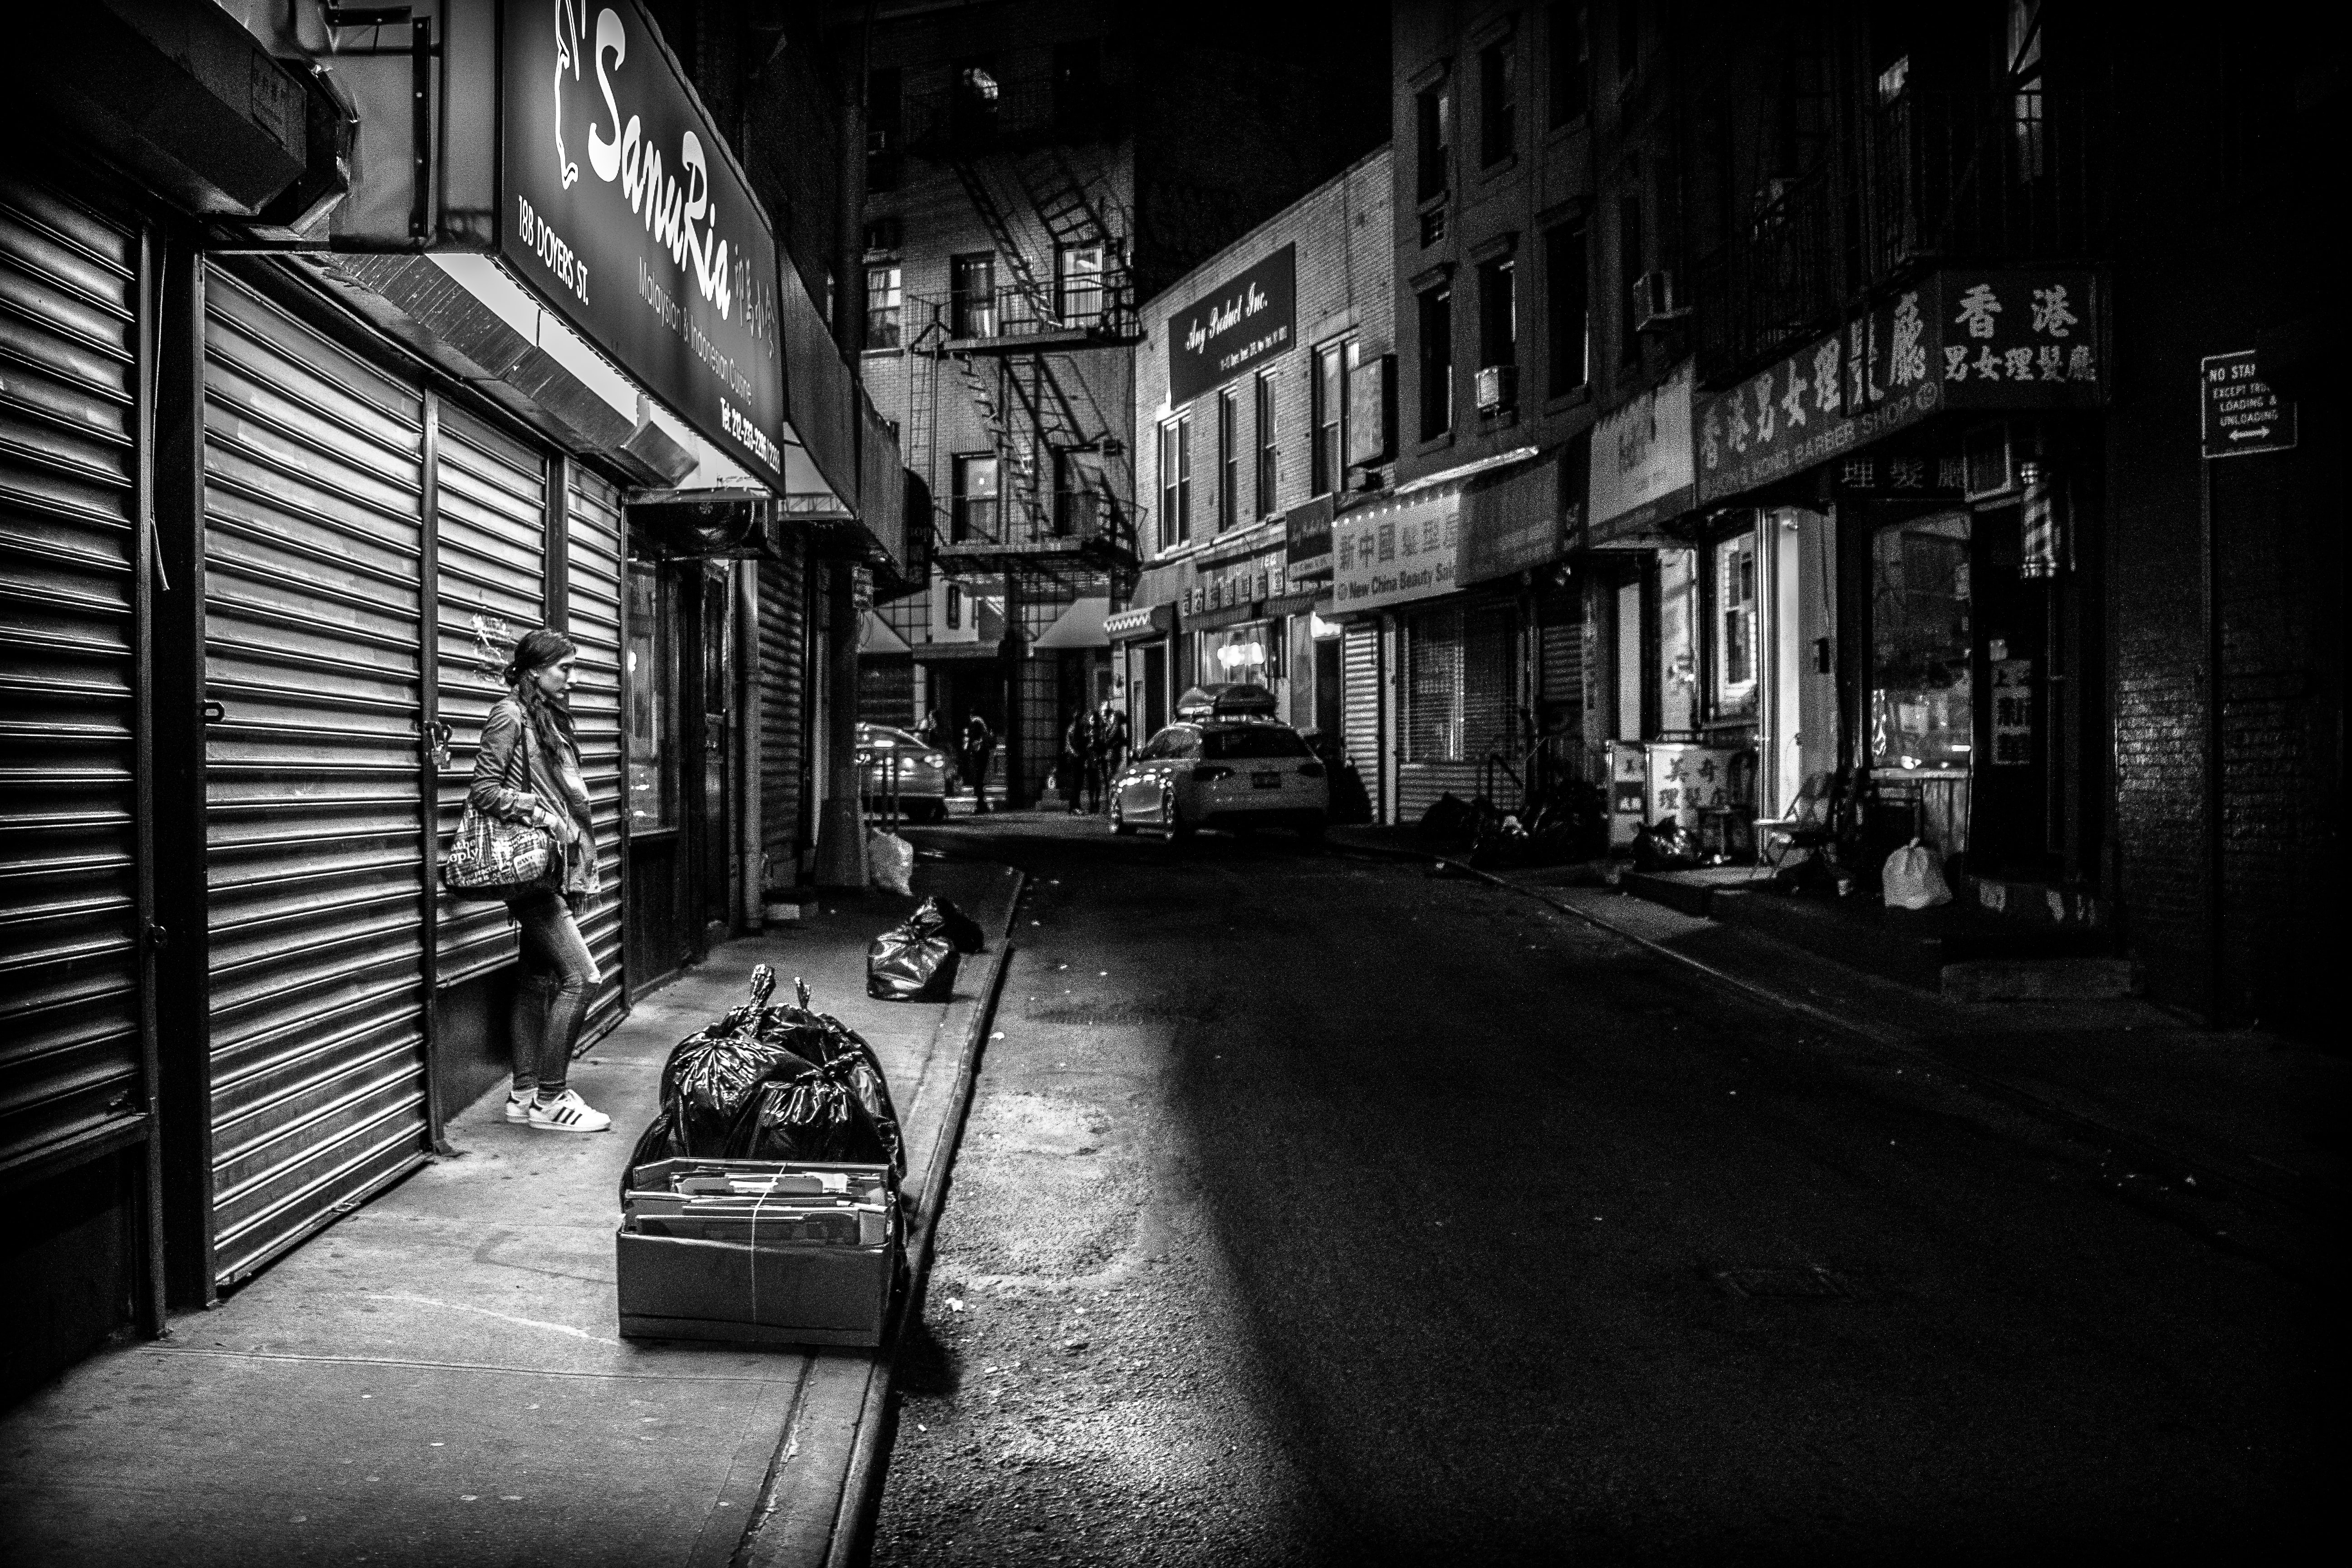 Black and white lone woman standing on sidewalk near closed storefront near garbage bags in Chinatown